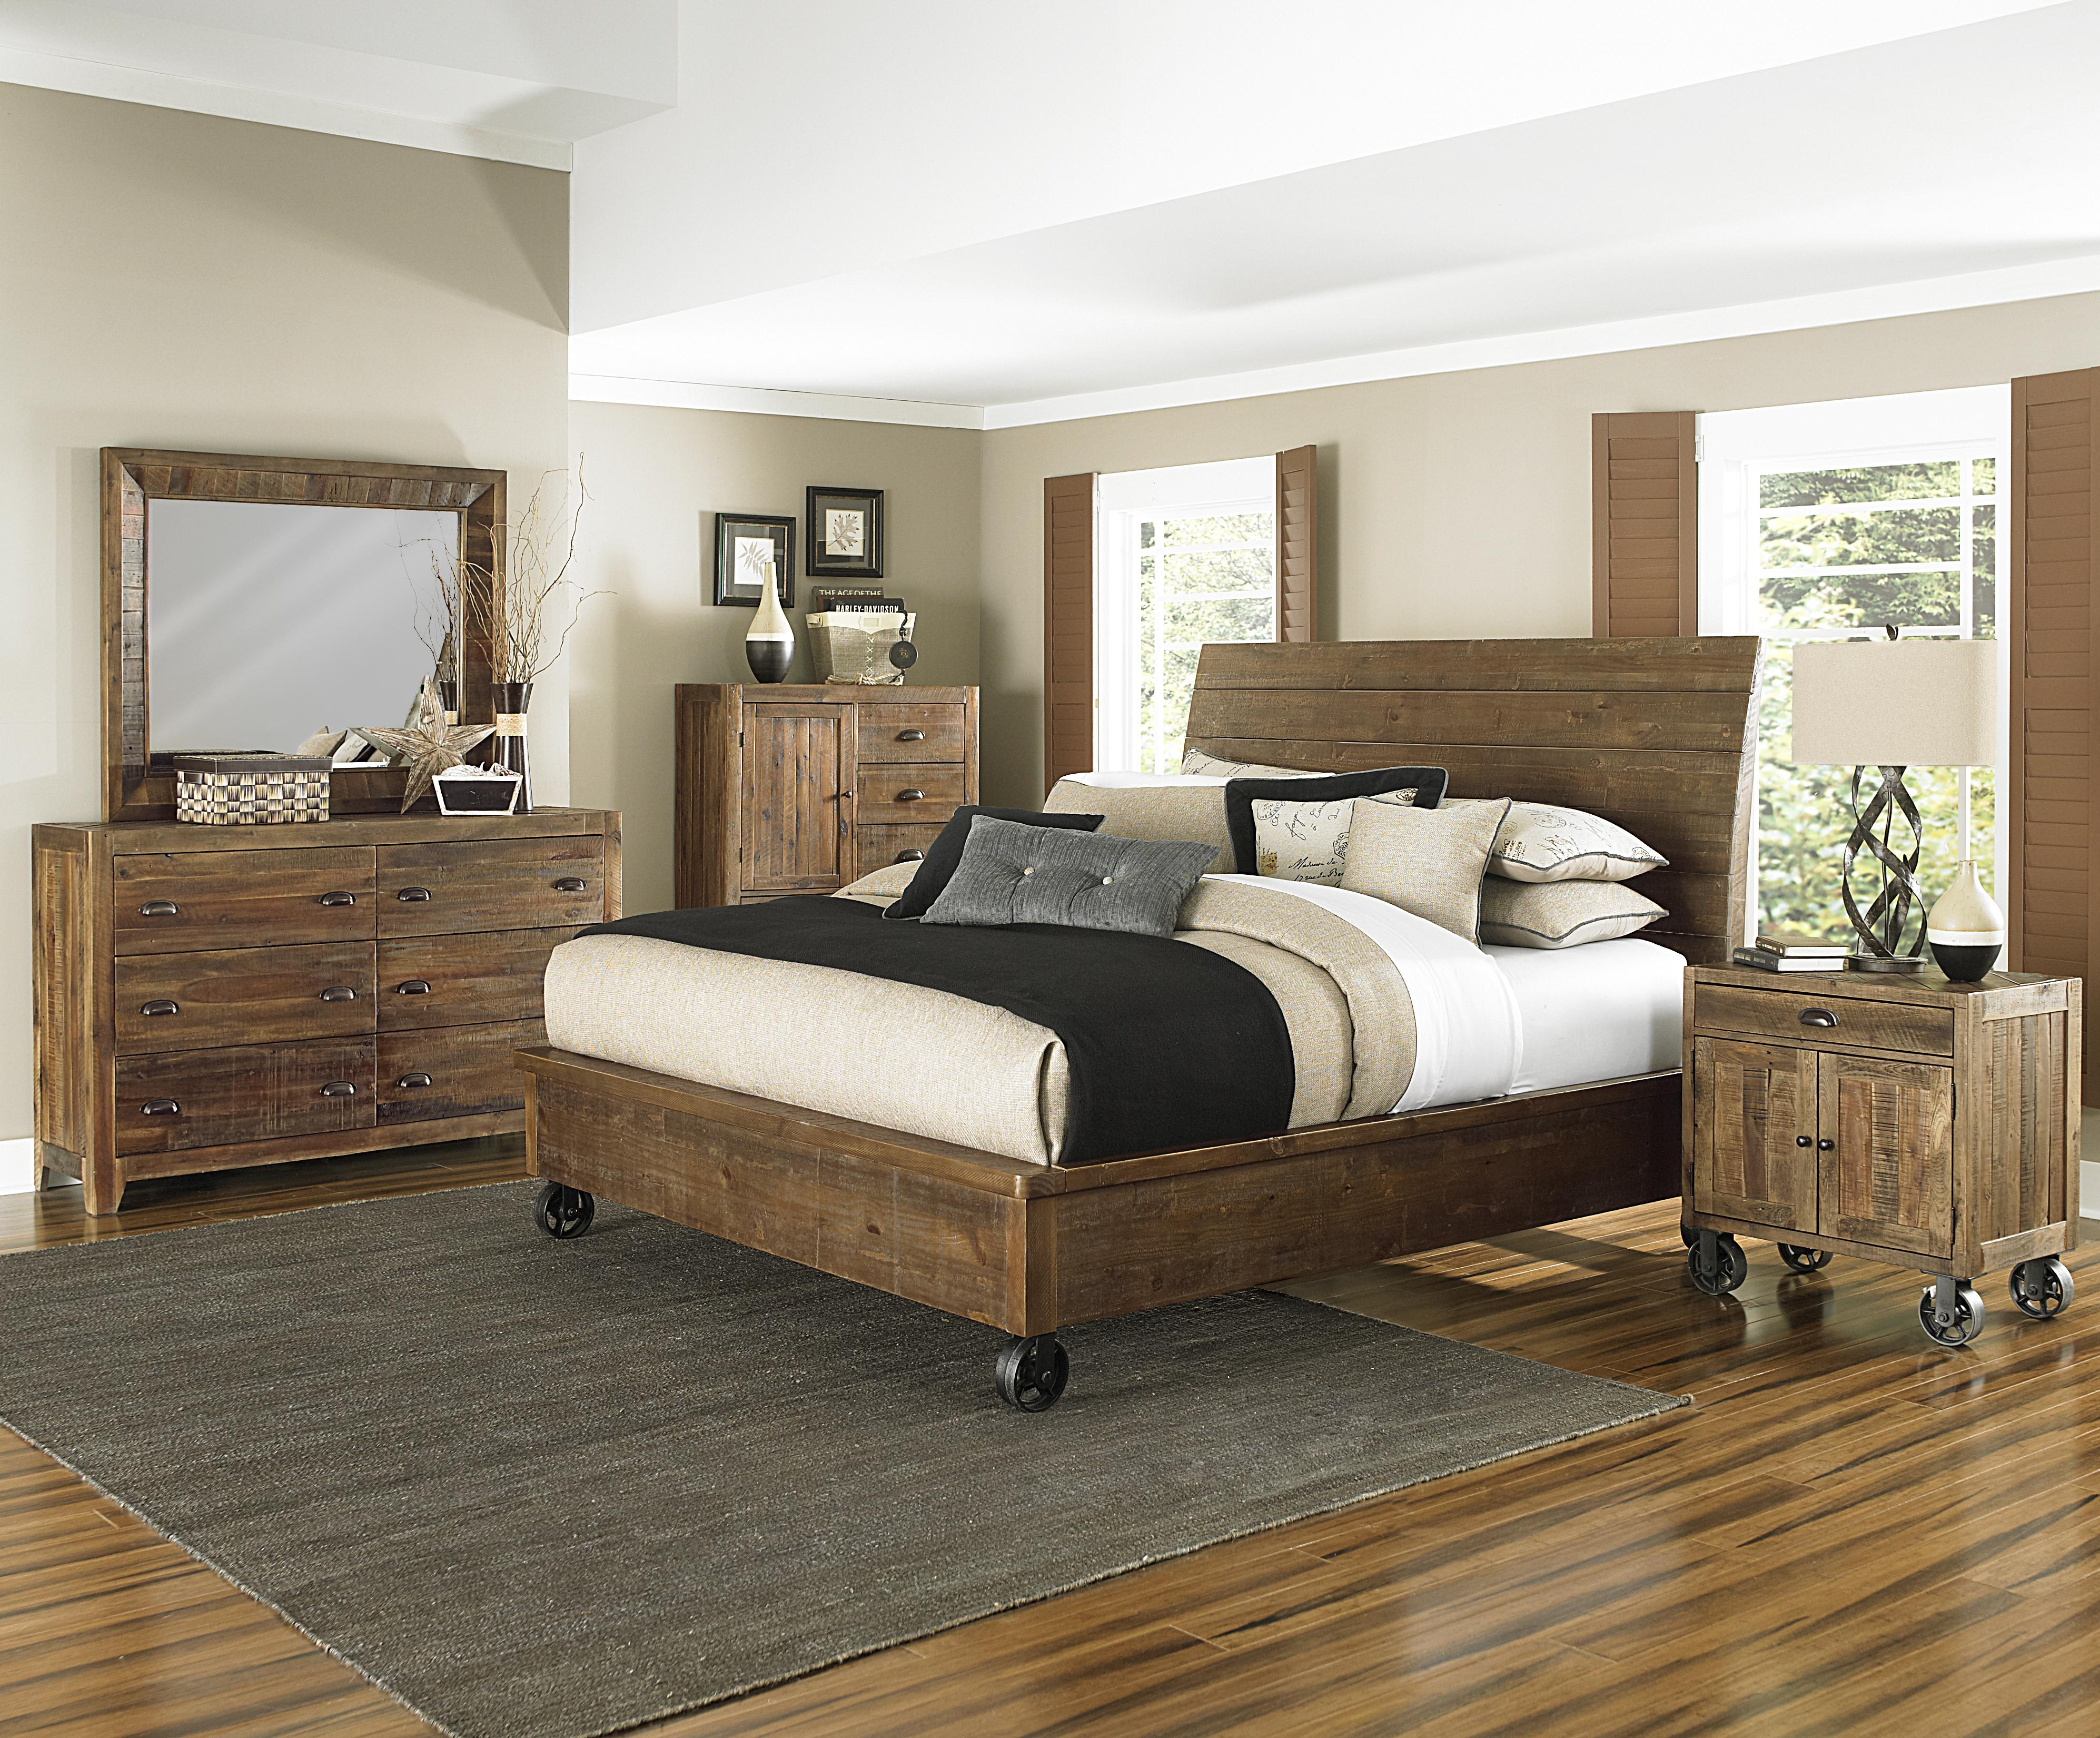 Magnussen Home  River Ridge King Bedroom Group - Item Number: B2375 K Bedroom Group 2